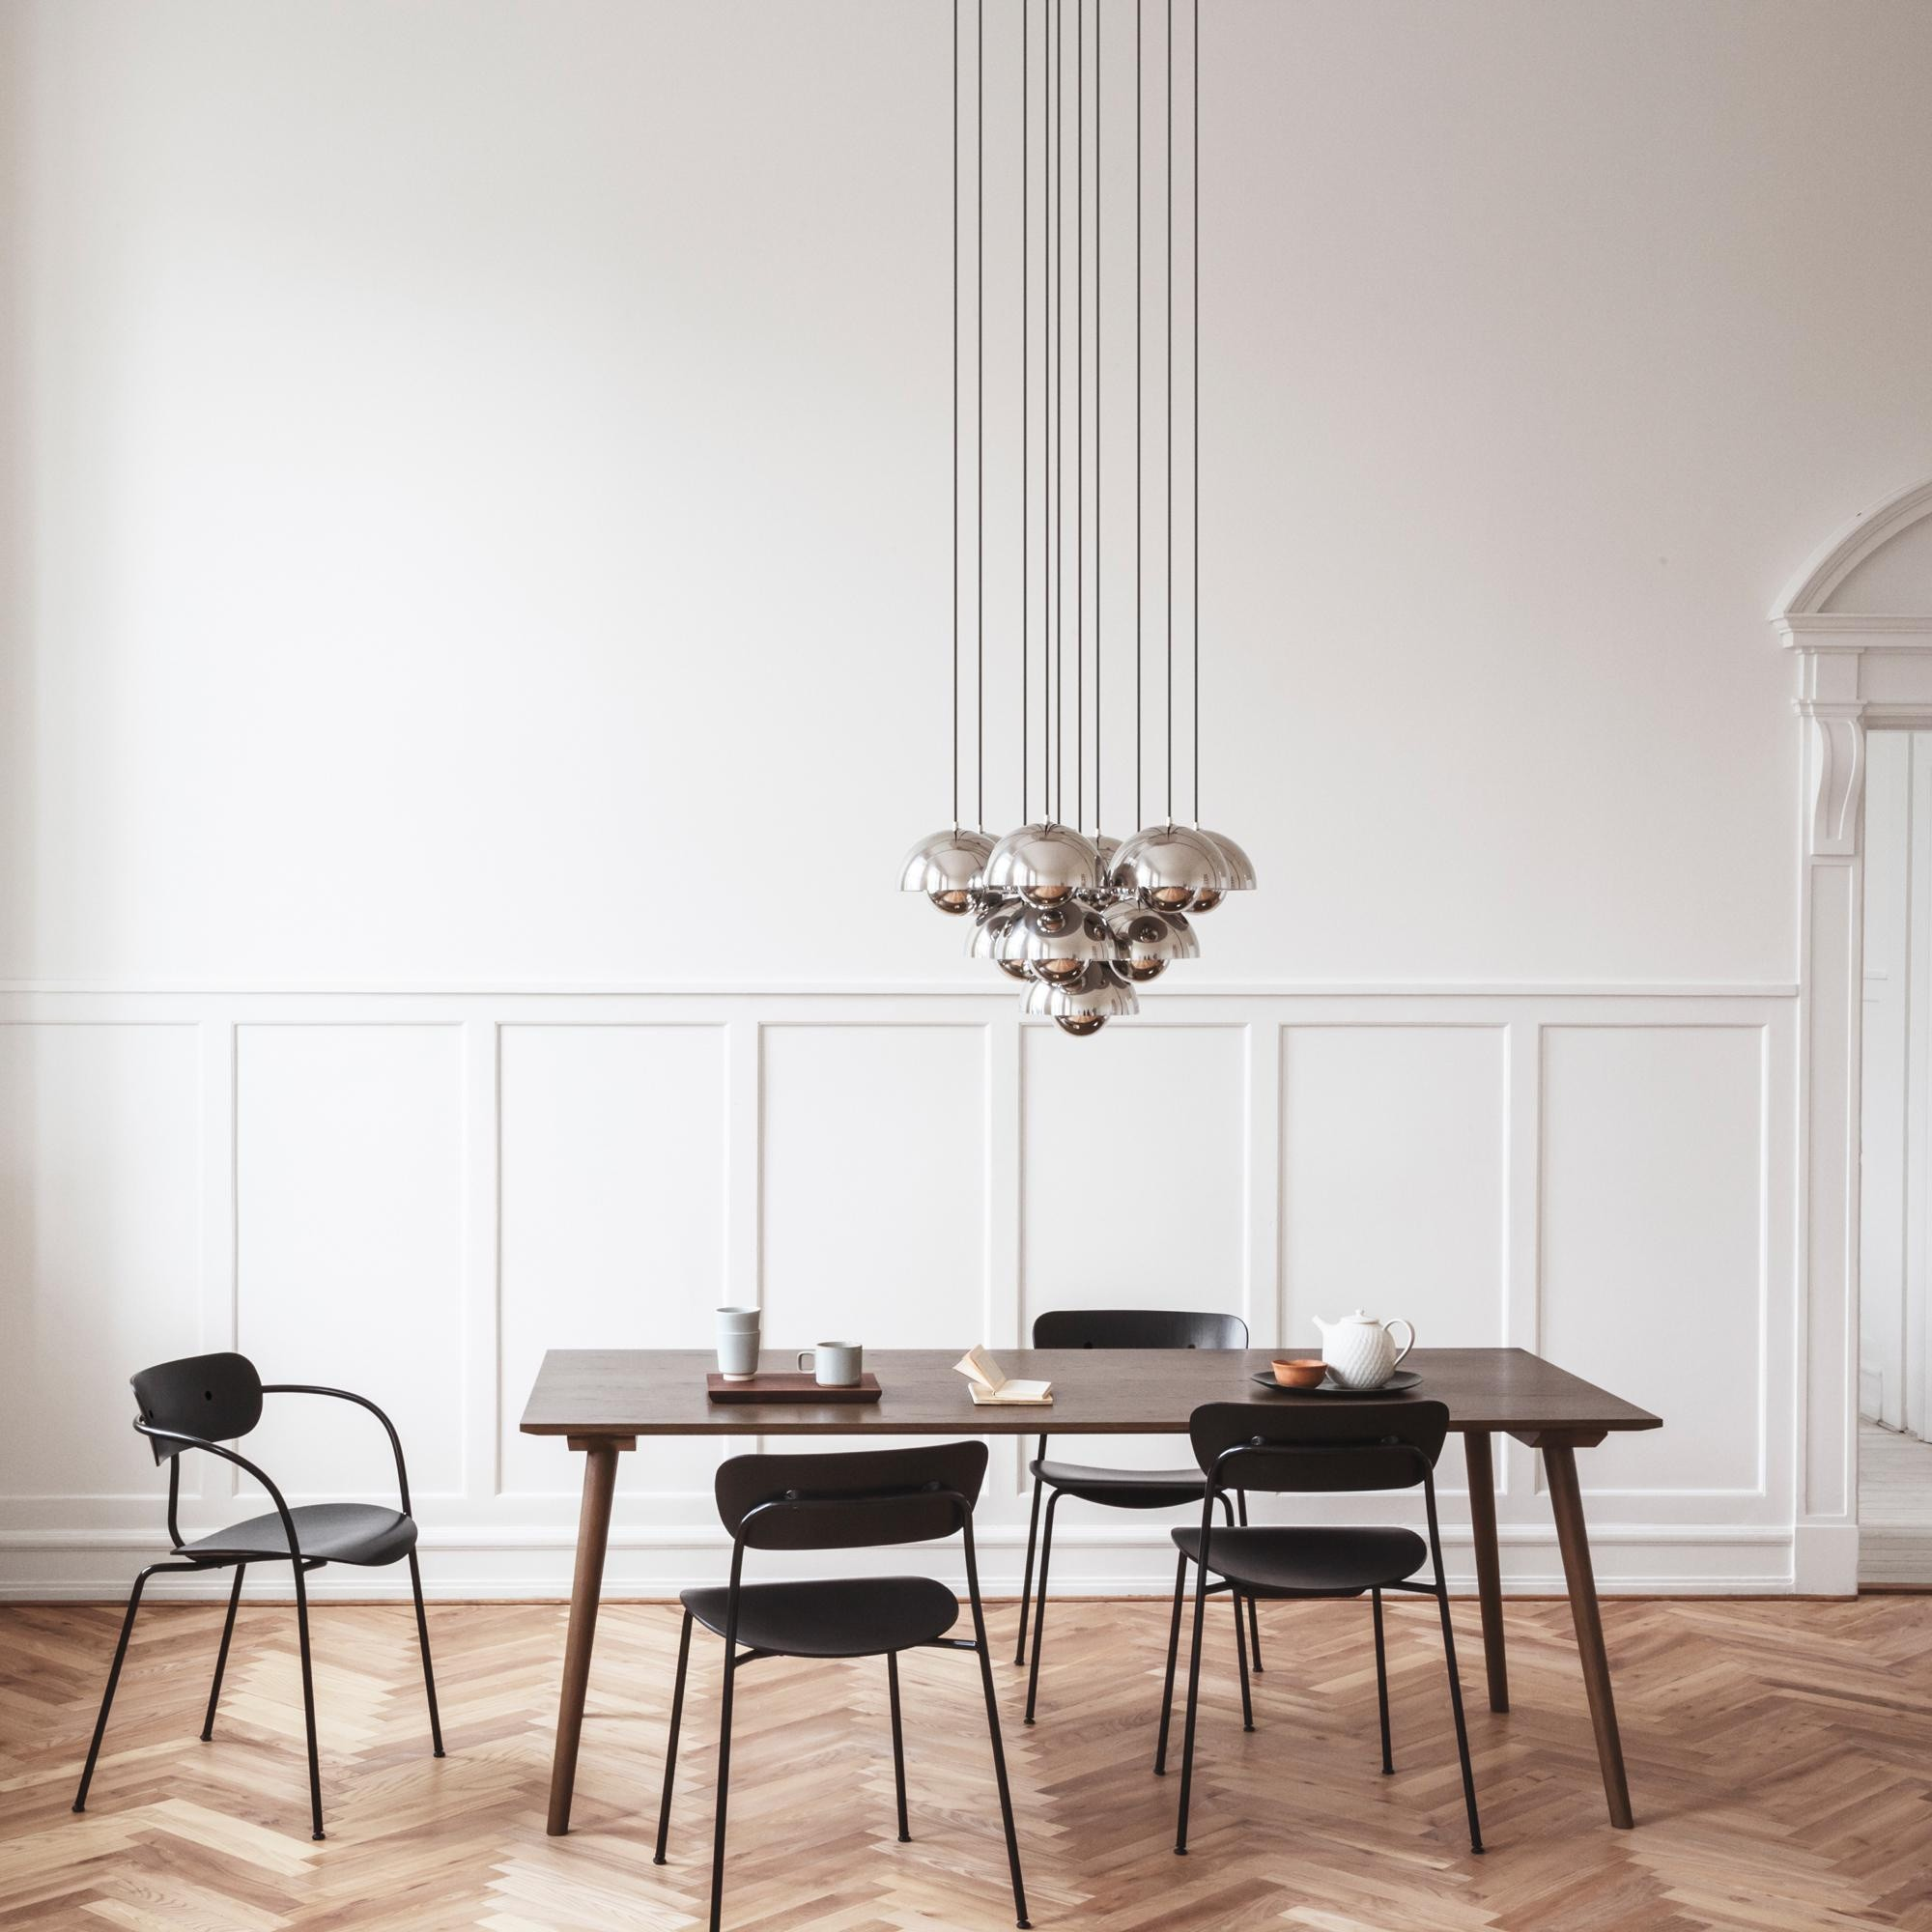 Amptradition In Between SK5 Dining Table AmbienteDirect